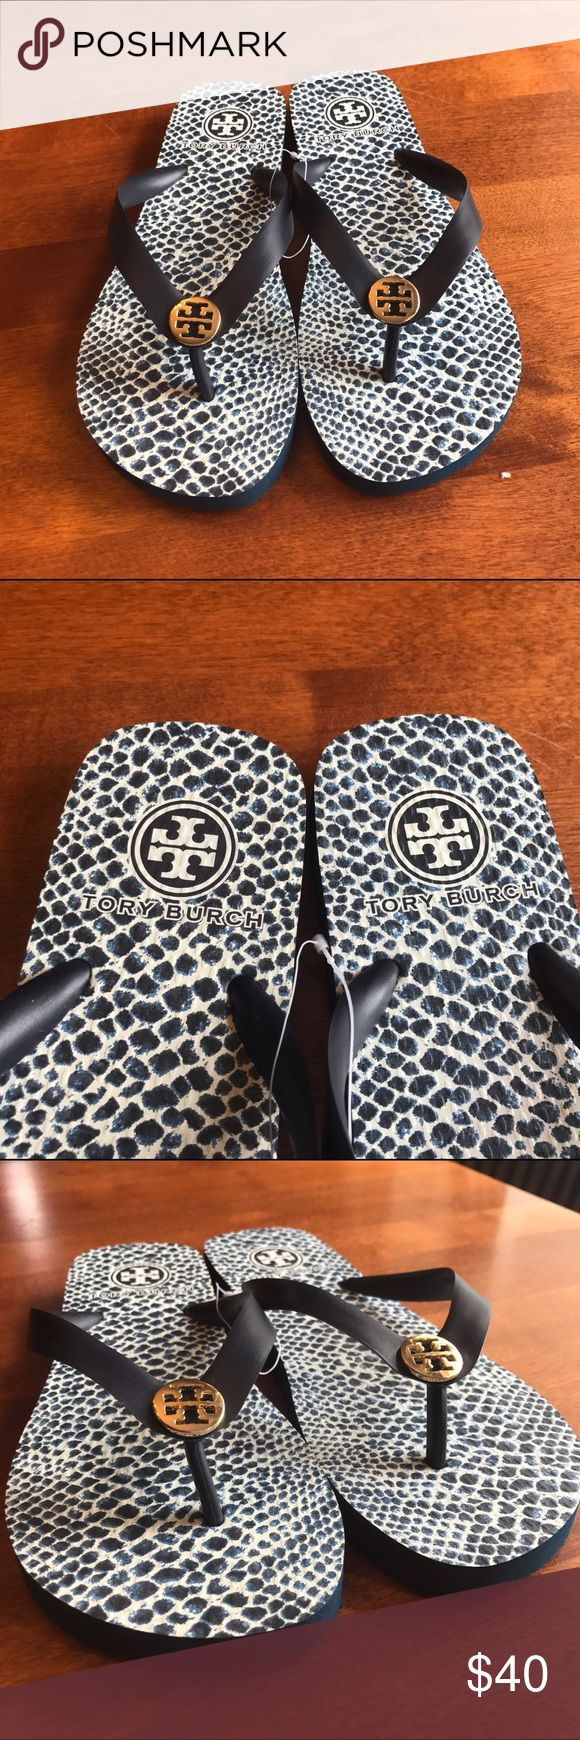 NWT TORY BURCH FLIP FLOPS! Tory Burch flip flop sandals! Never worn! Got them for Christmas but they don't fit me 😭! Size 7! Great flip flops color is blue and white with the Tory Burch logo in gold! Tory Burch Shoes Sandals